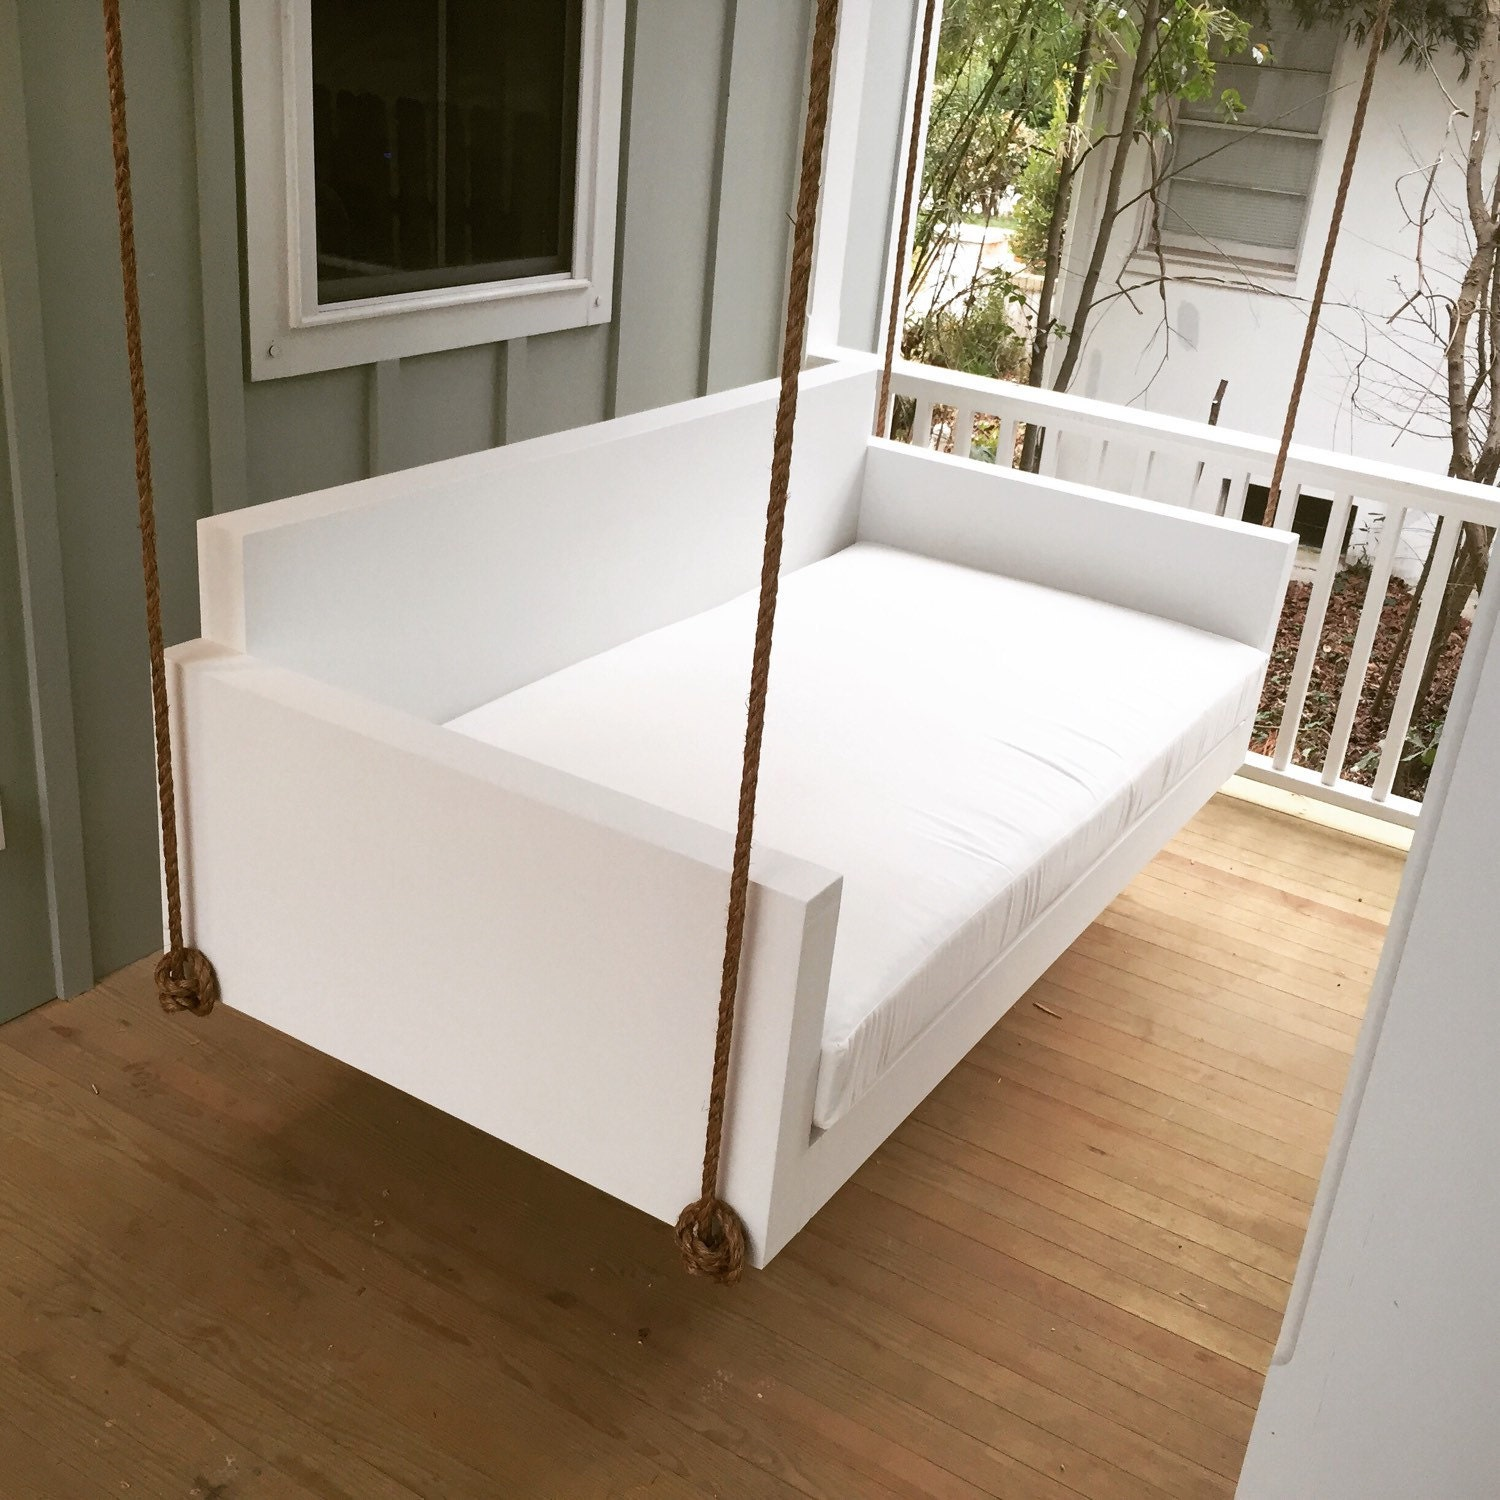 porch swing the moultrie swing bed free. Black Bedroom Furniture Sets. Home Design Ideas